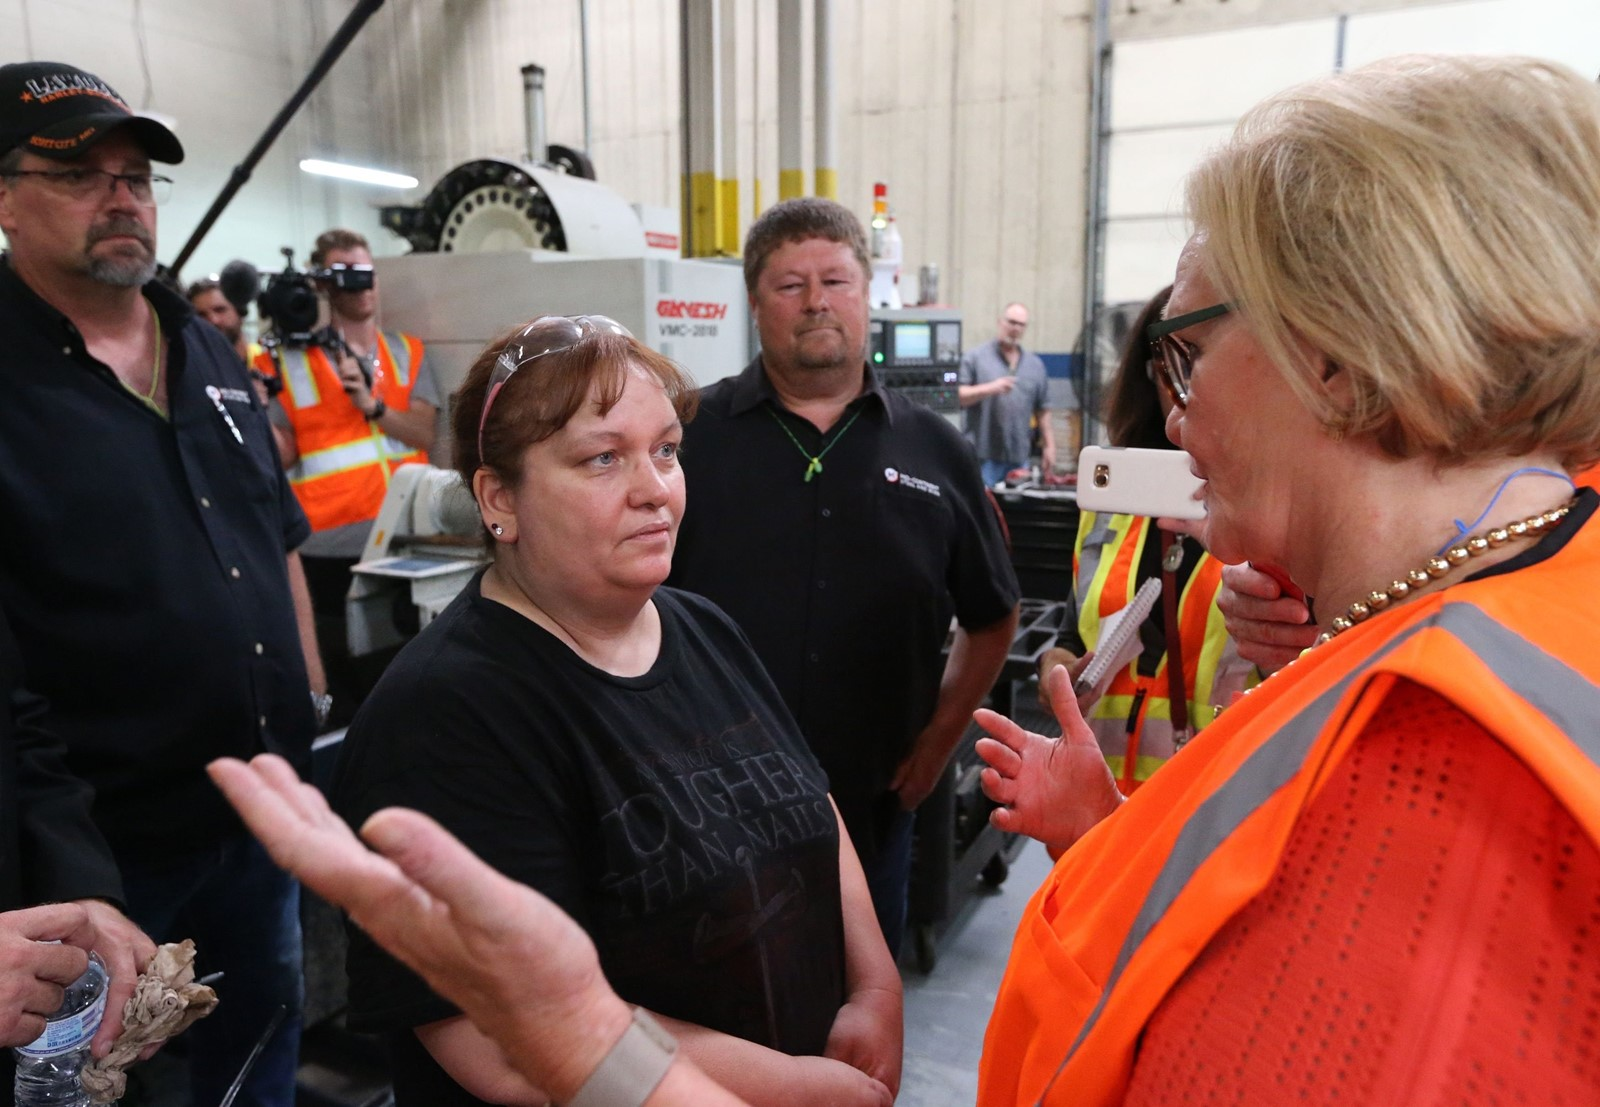 Senator Claire McCaskill (Democrat-Missouri), right, criticized Trump's tariffs when she toured the plant last week. — Photograph: Bill Greenblatt/Agence France-Presse/Getty Images.